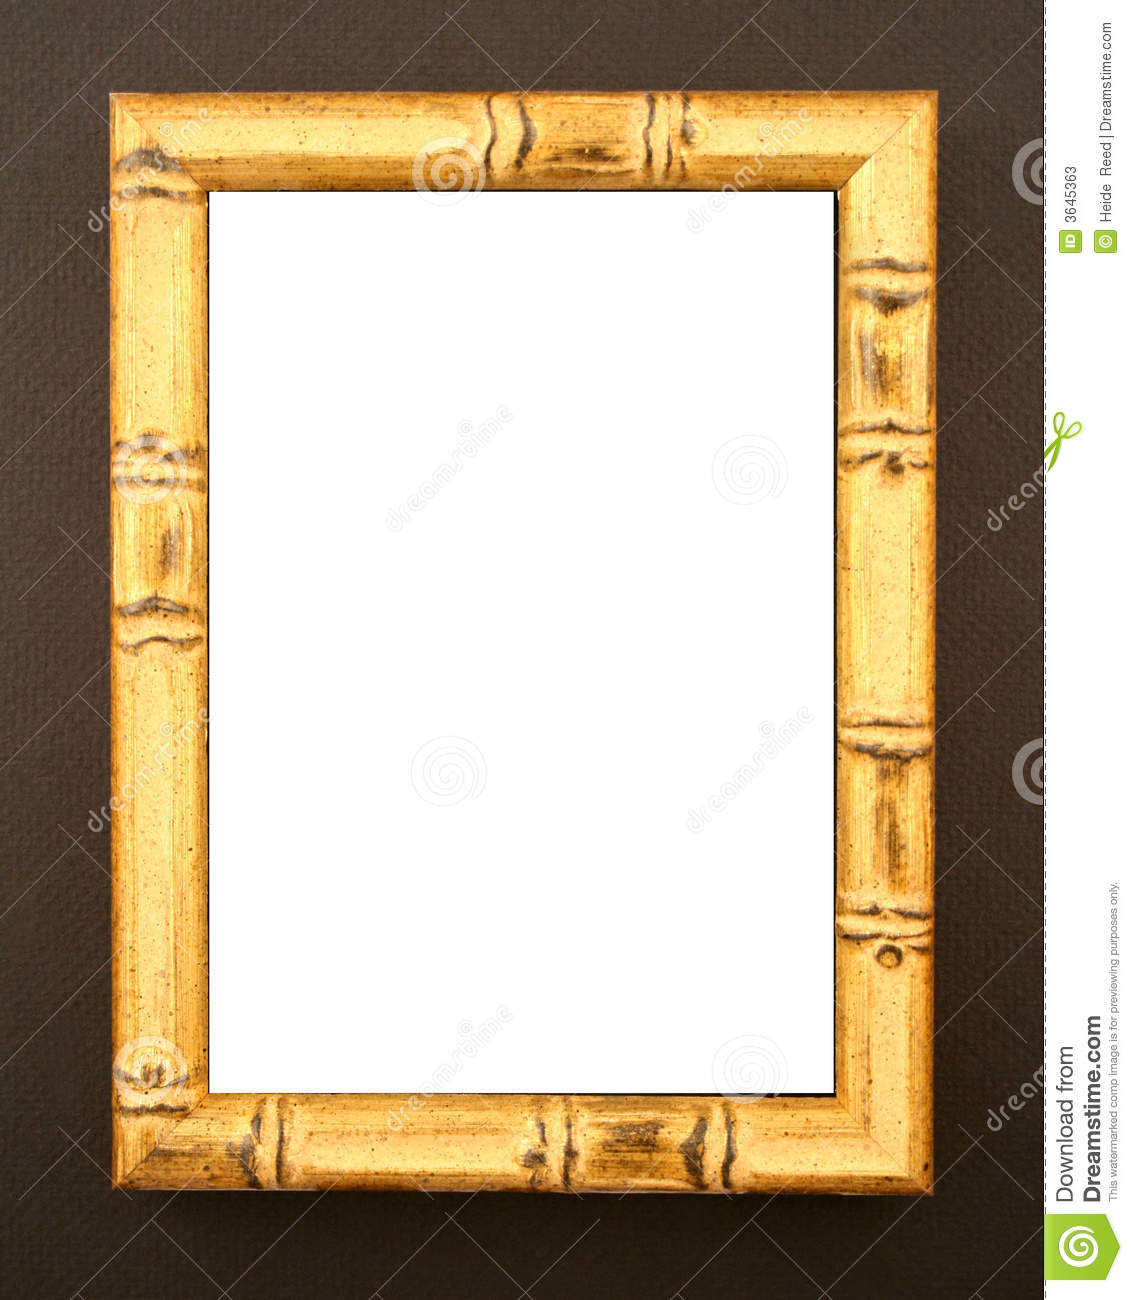 X asian photo frame 10 8